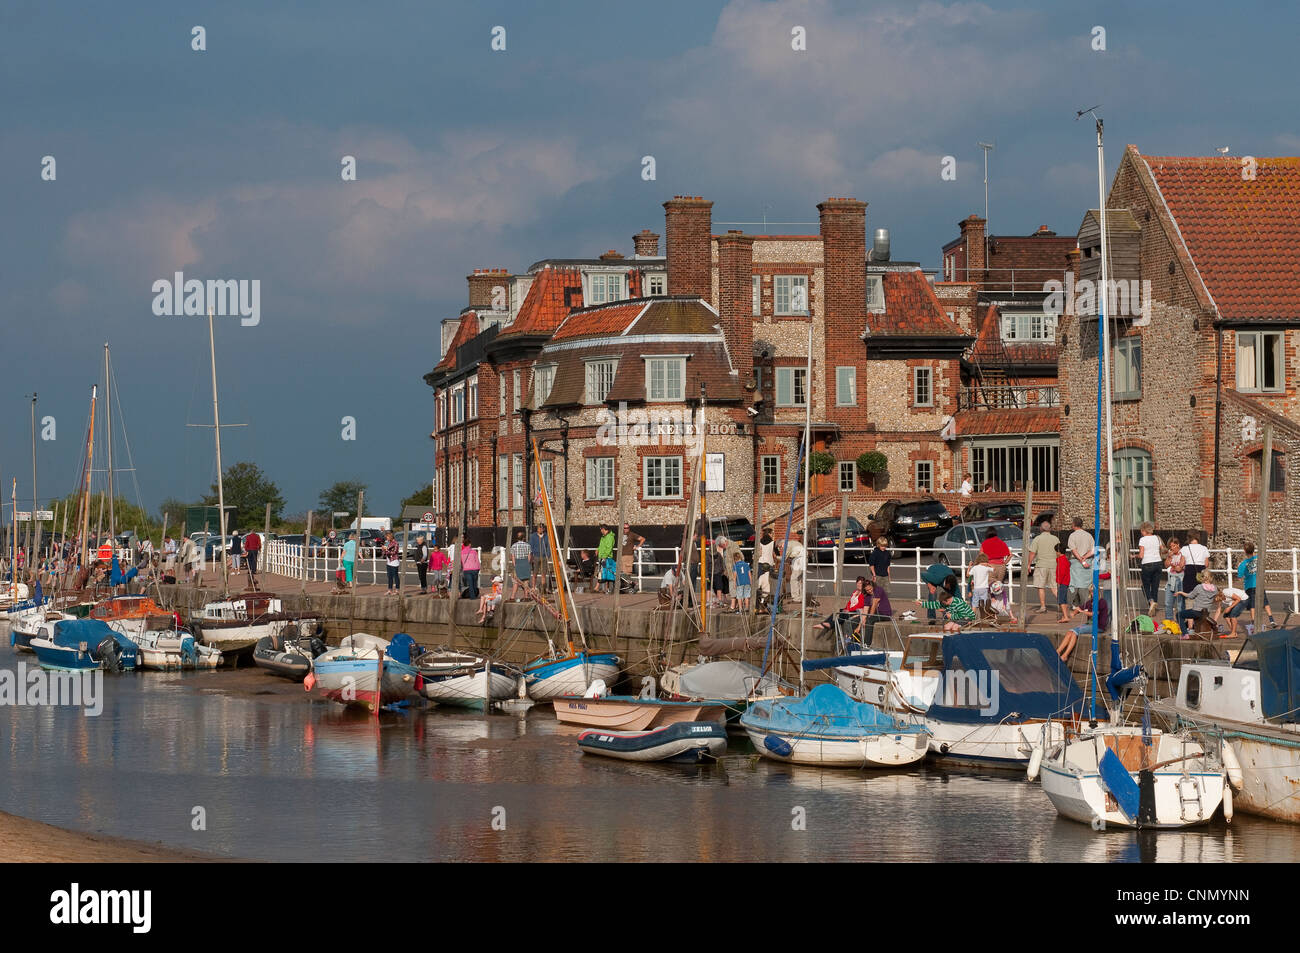 Holidaymakers and boats at Blakeney, Norfolk, East Anglia, England. - Stock Image